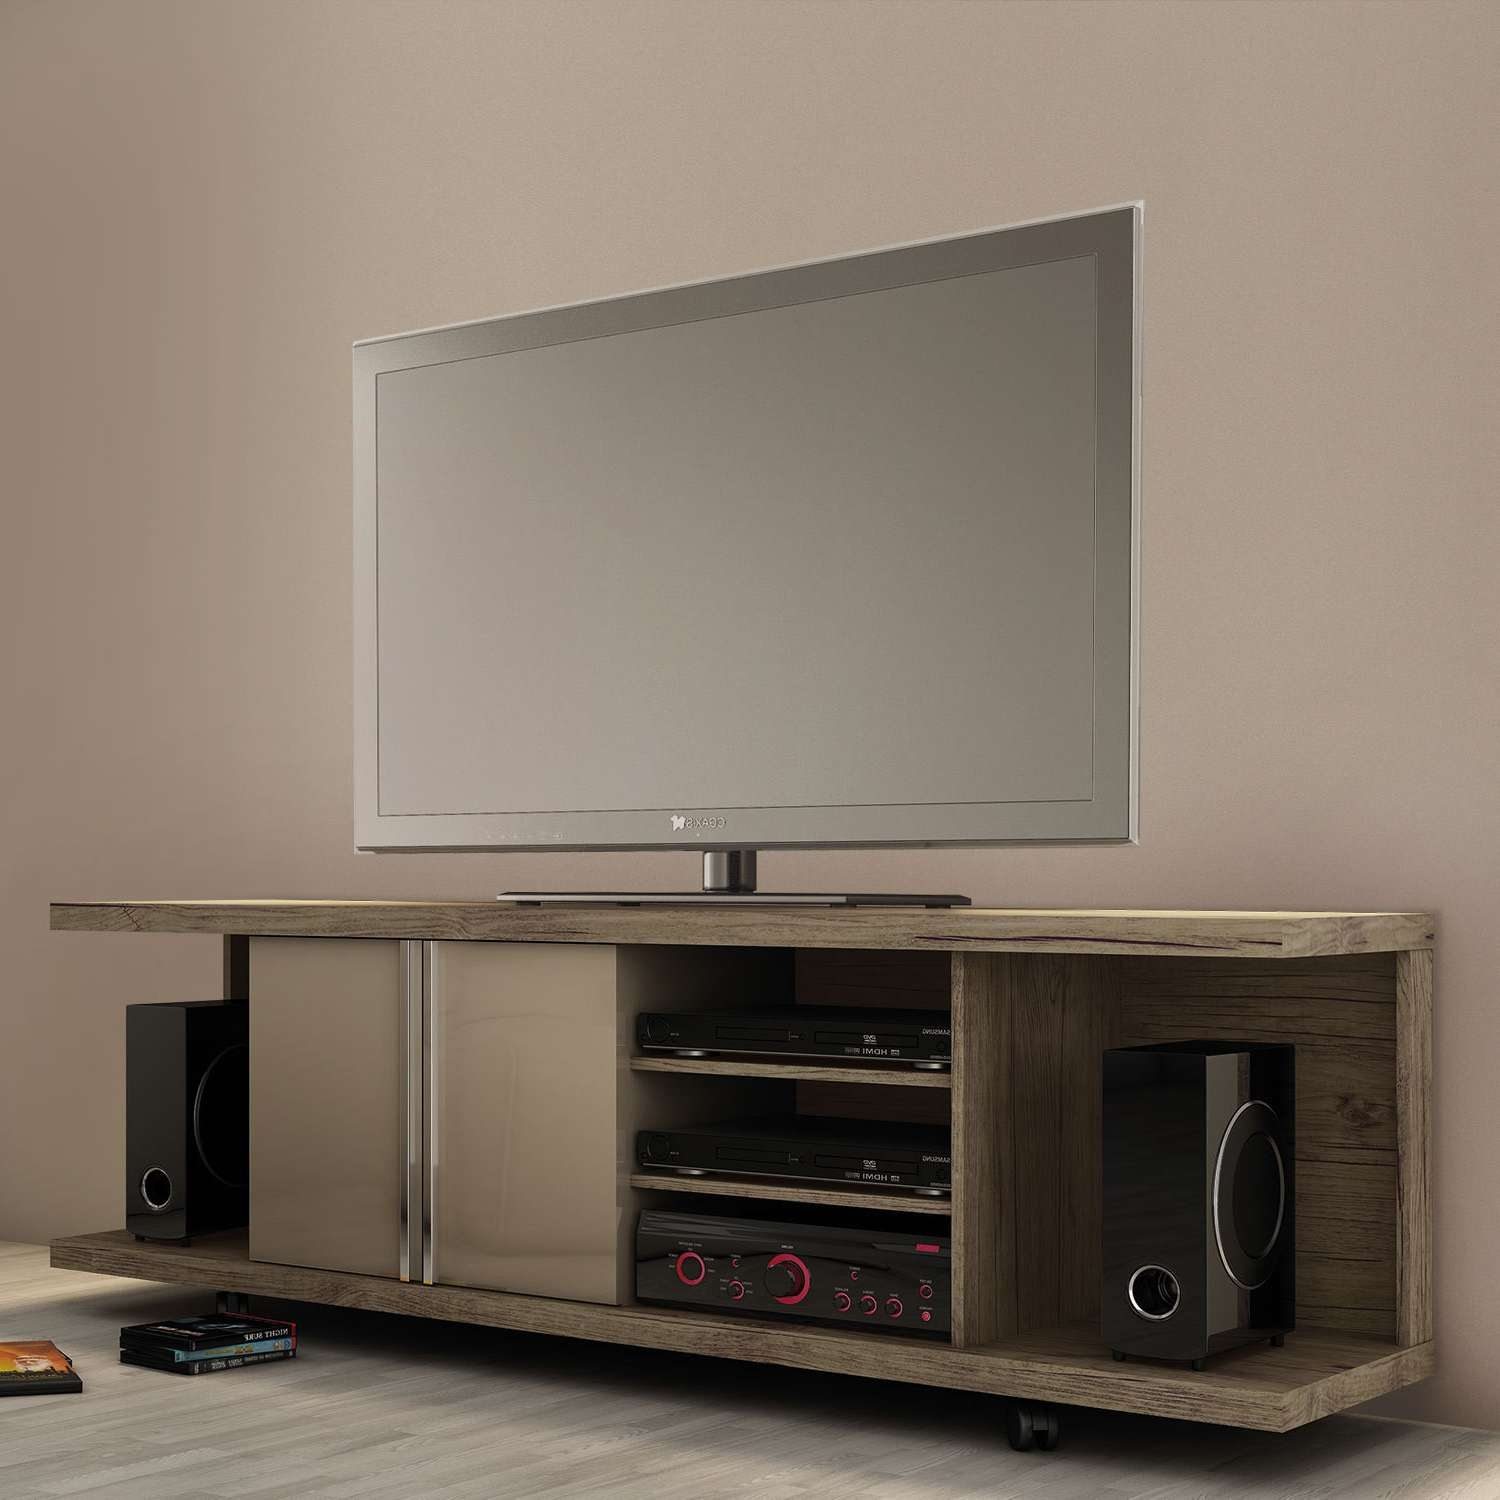 Fancy All Tv Stands Wayfair Toger Together With Maroneia Stand With Regard To Fancy Tv Stands (View 1 of 15)